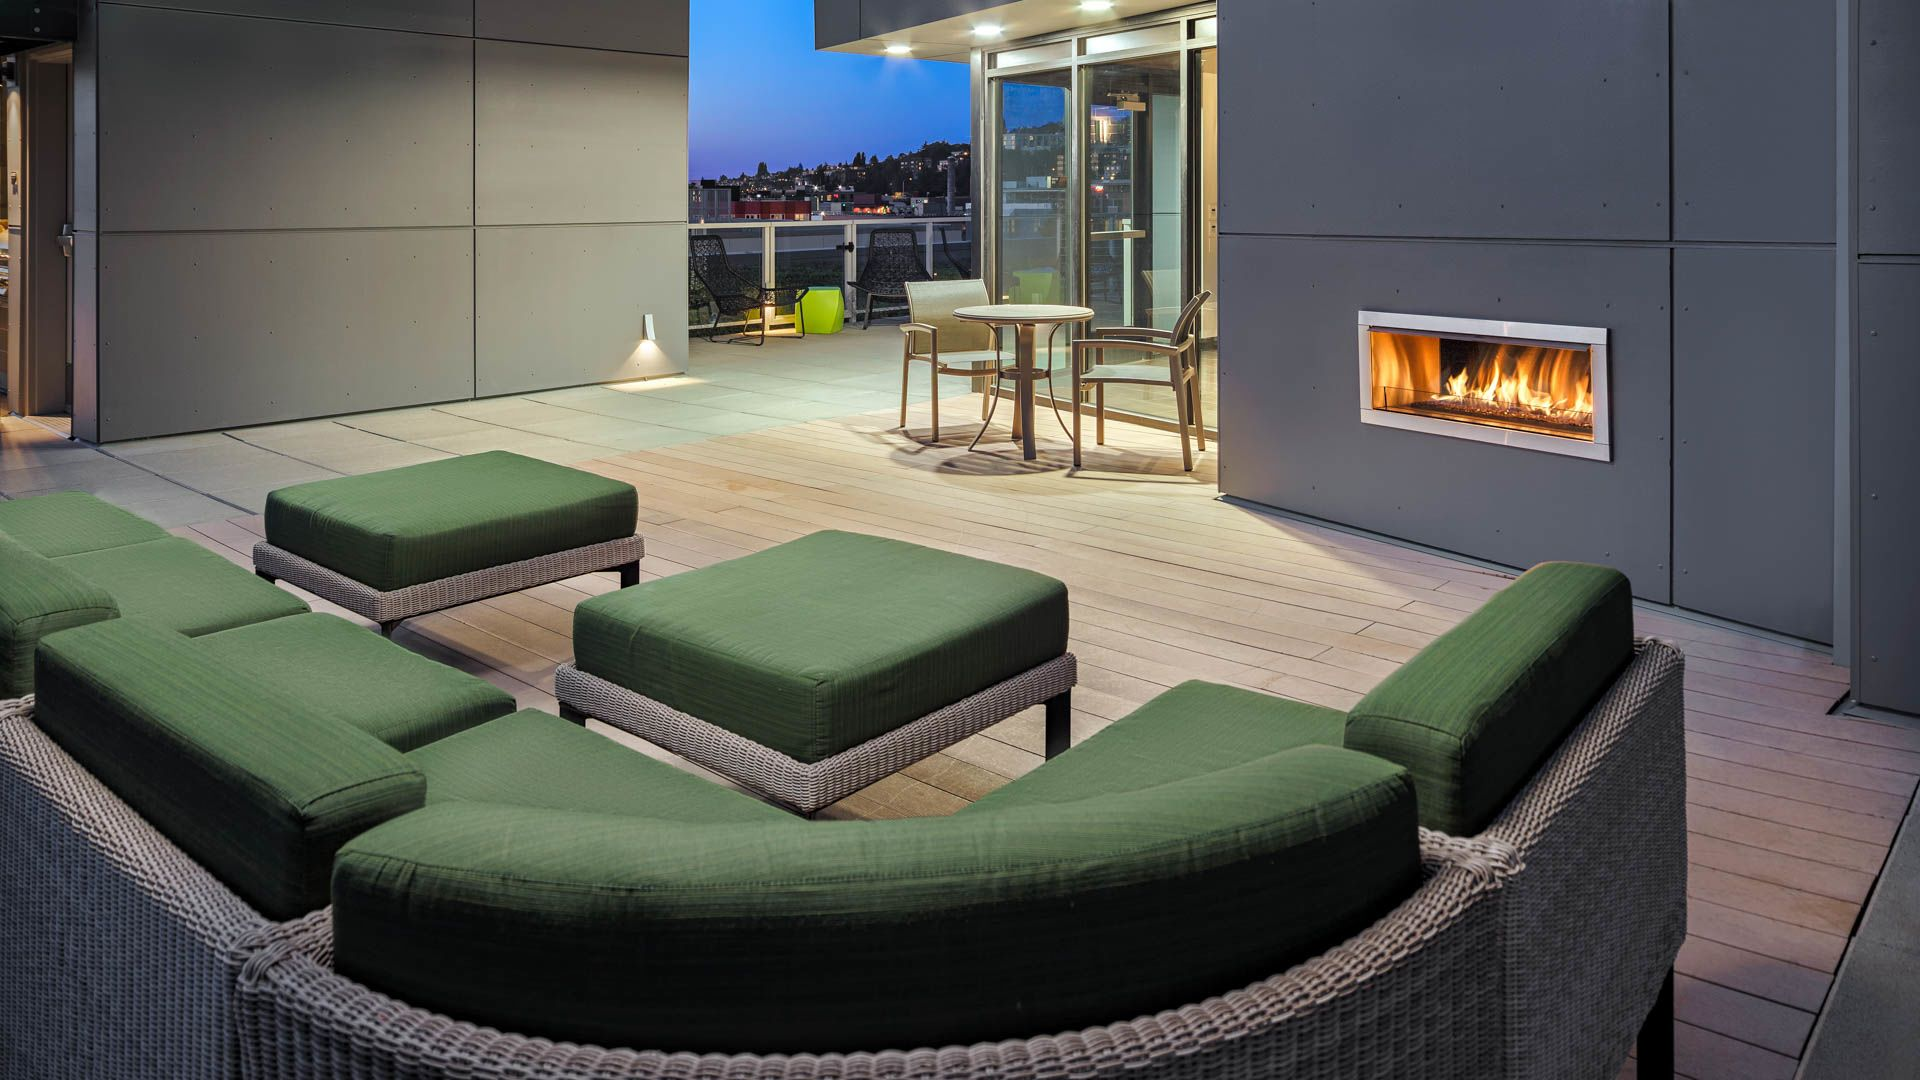 Cascade Apartments - Rooftop Lounge with Fireplace